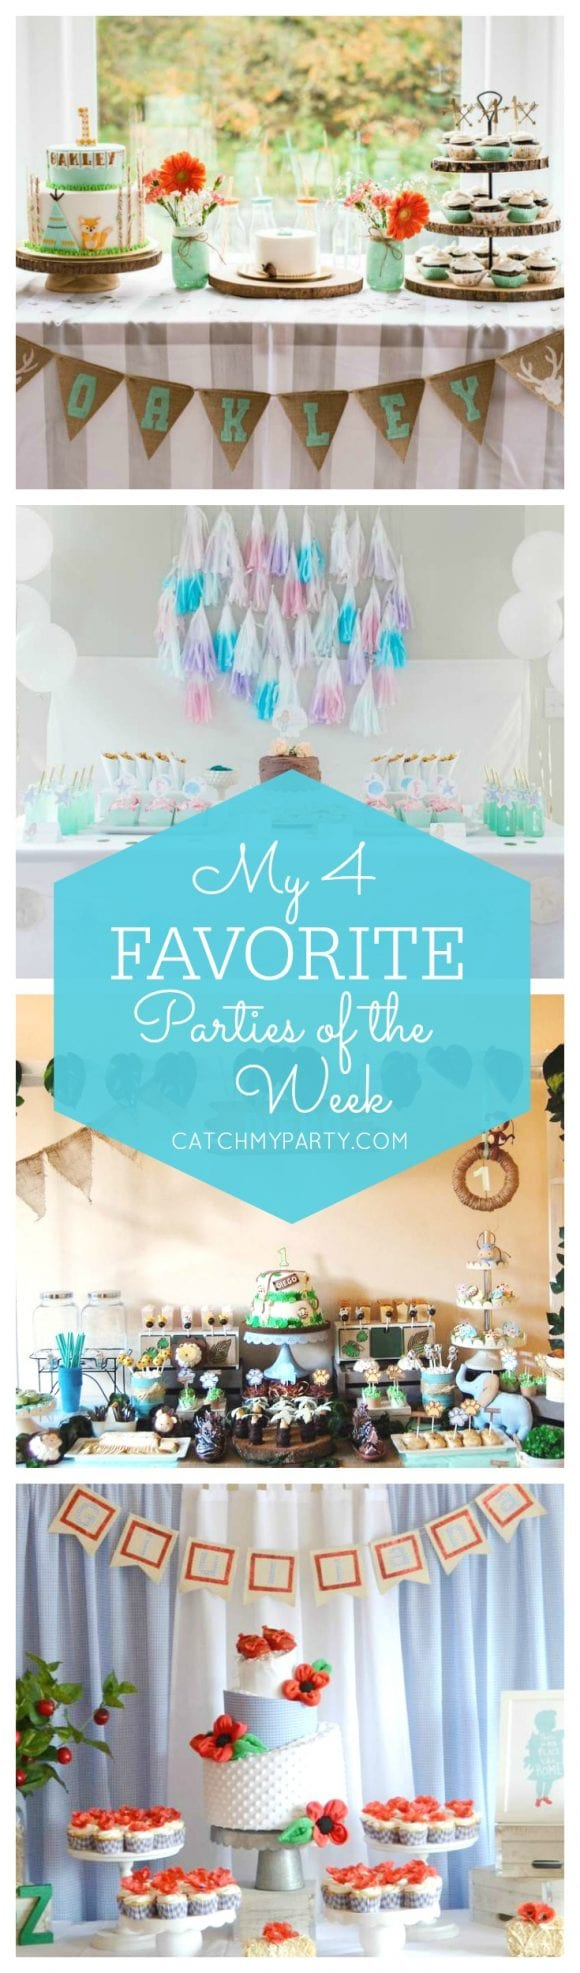 My favorite parties this week include an adorable woodland birthday party, an pretty mermaid birthday party, a cute jungle animals birthday party and a modern Wizard of Oz baby shower.